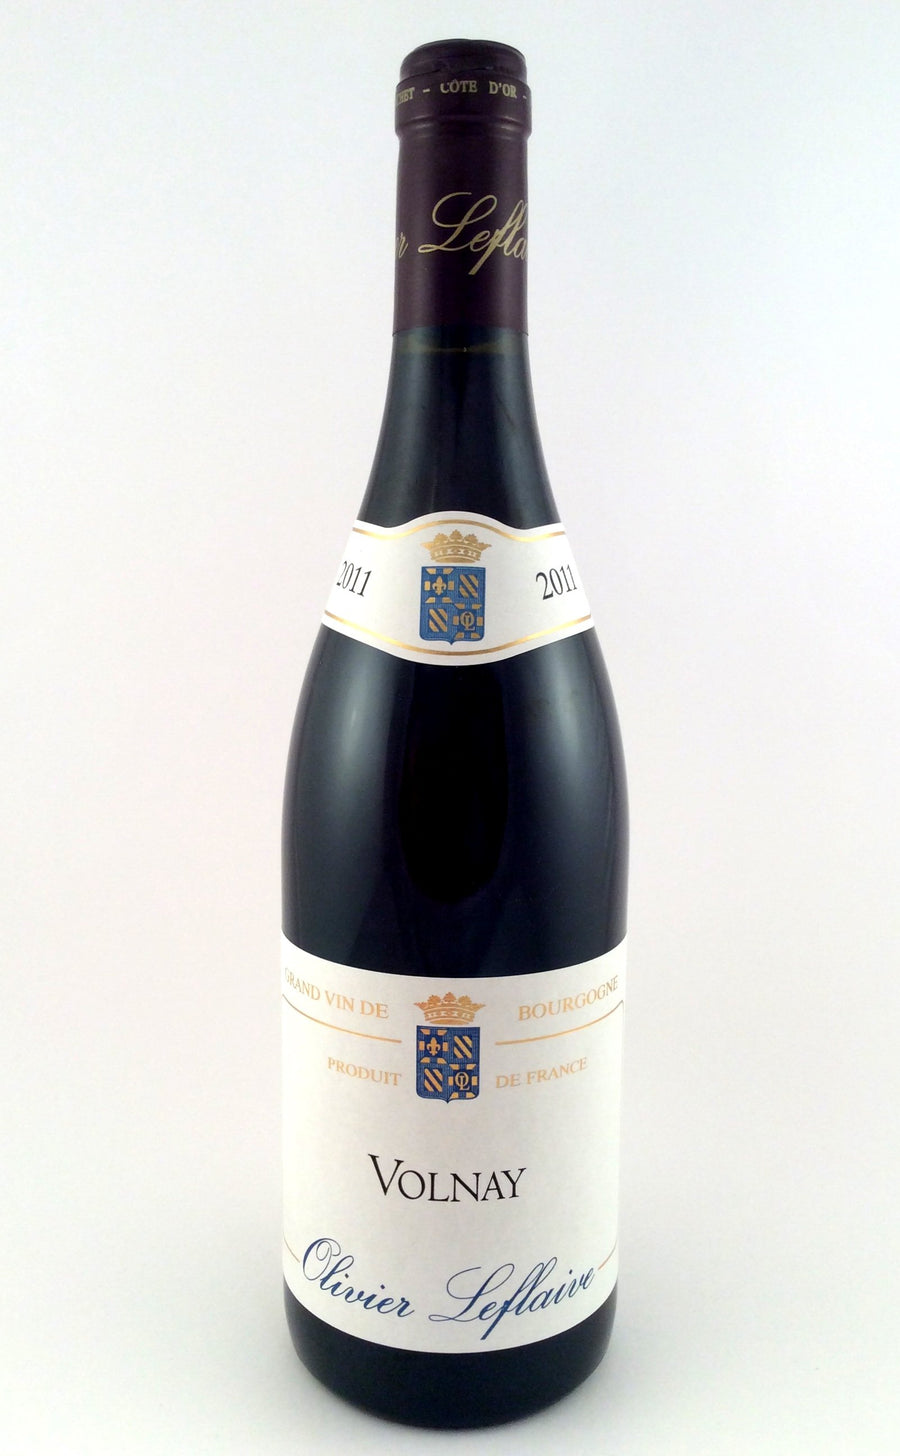 Olivier Leflaive Volnay-Wineseeker